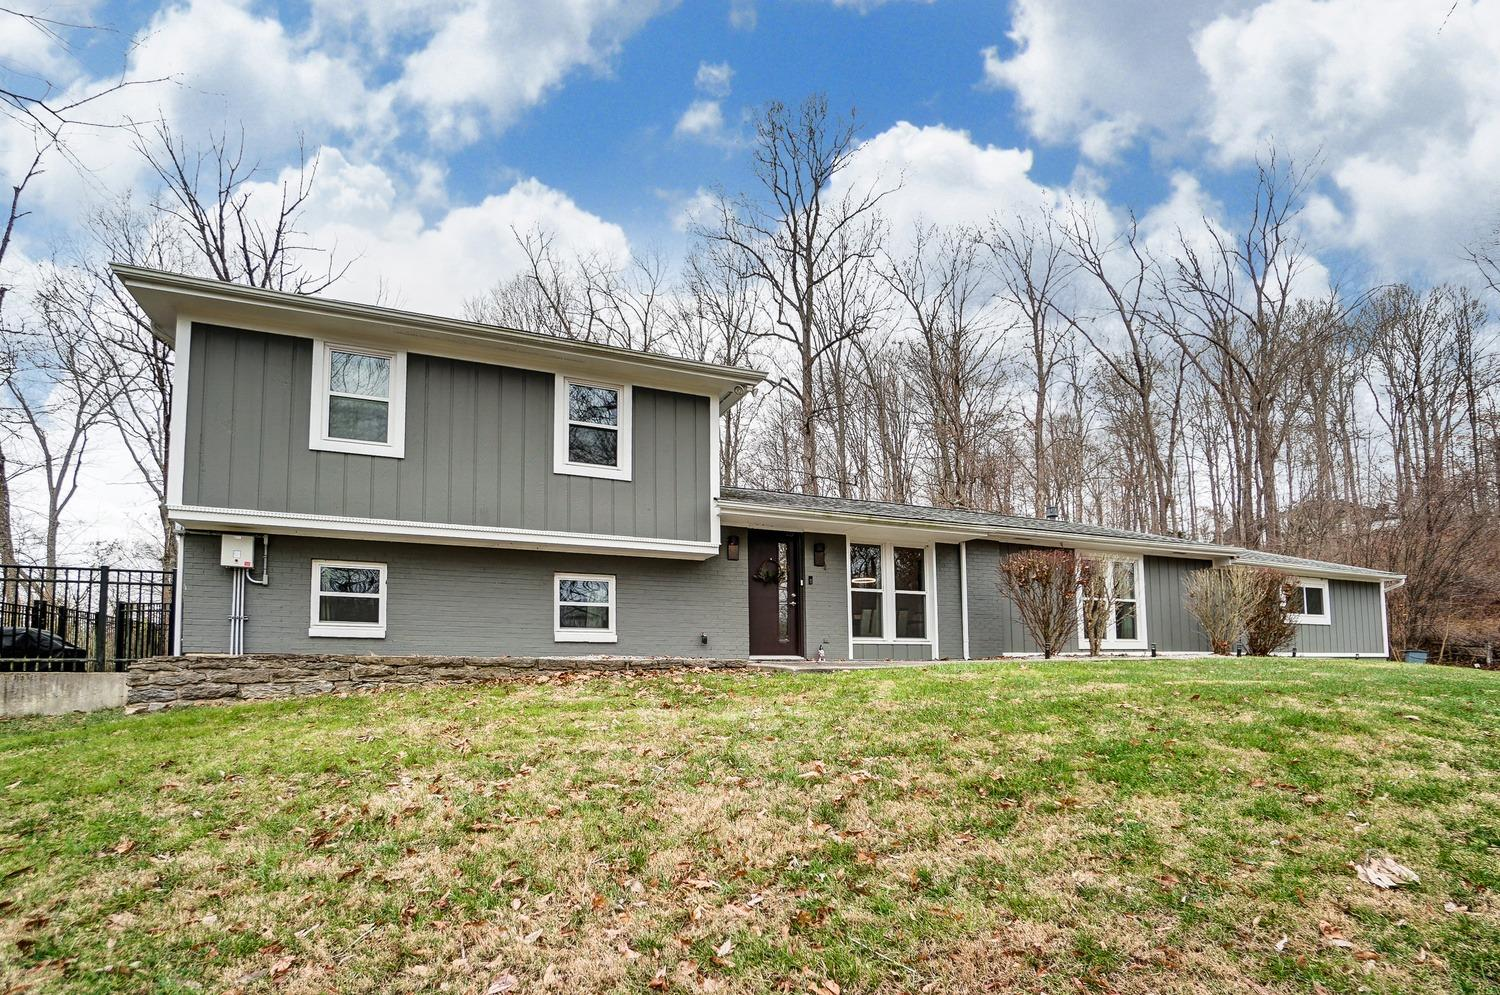 Photo 1 for 9433 E Kemper Rd Symmes Twp., OH 45140